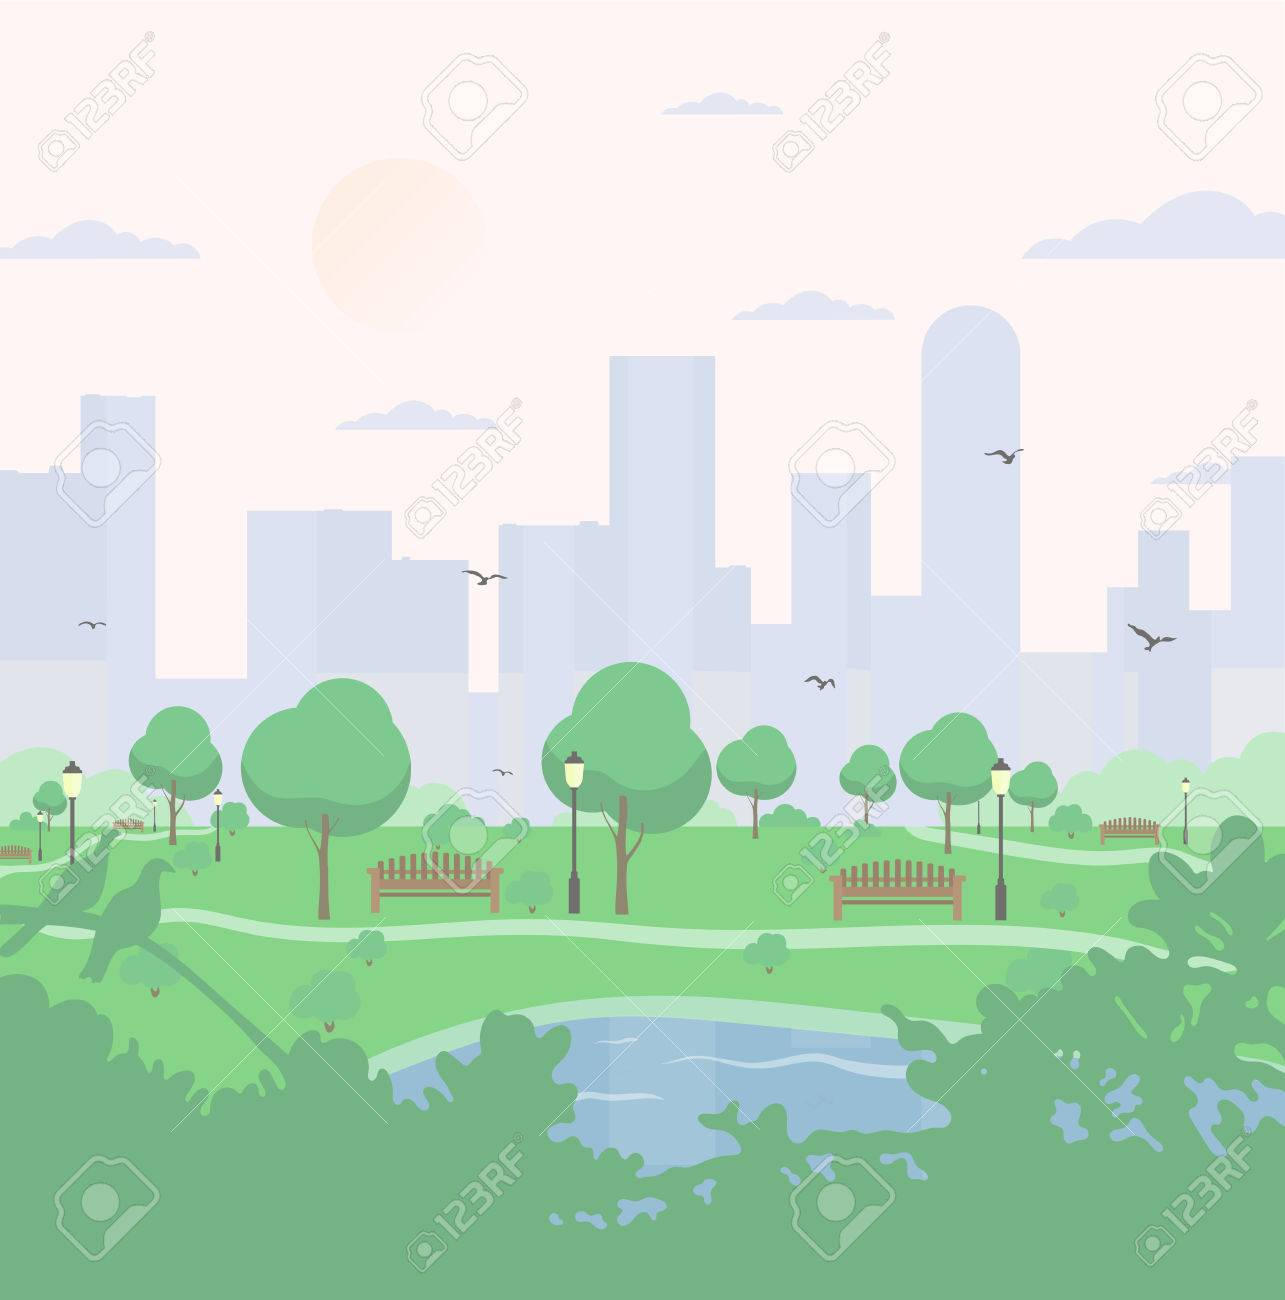 City park on high-rise buildings background. landscape with trees, bushes, lake, birds, lanterns and benches. Colorful vector square illustration in flat cartoon style. - 80120840